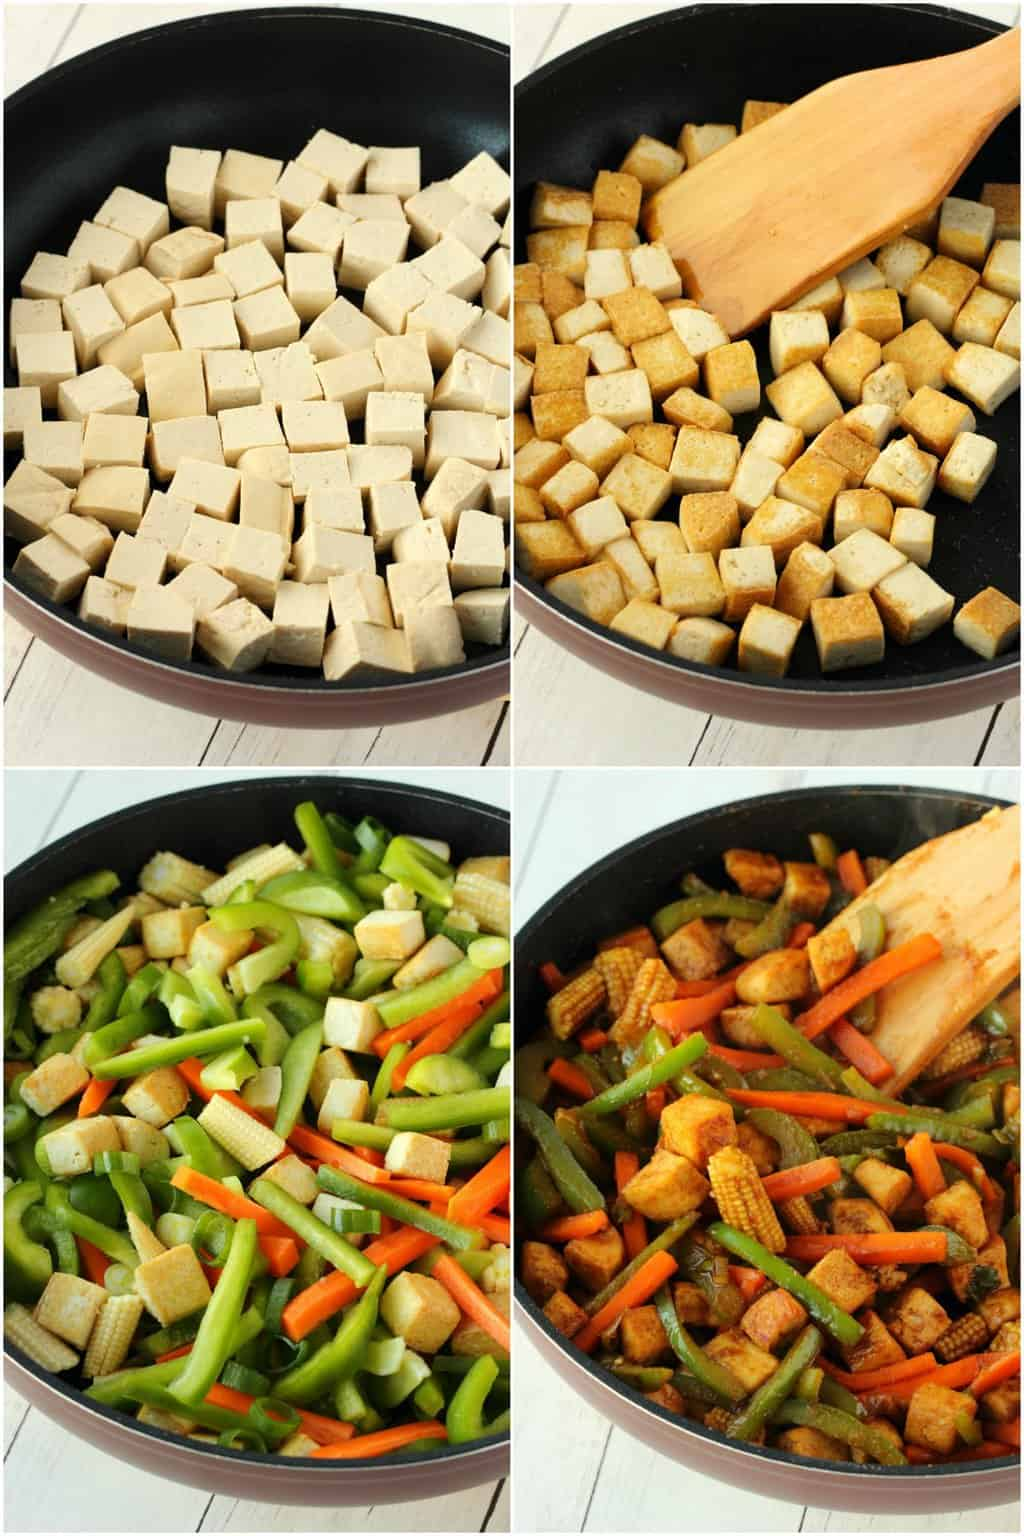 Step by step process photo collage of making a tofu stir fry.